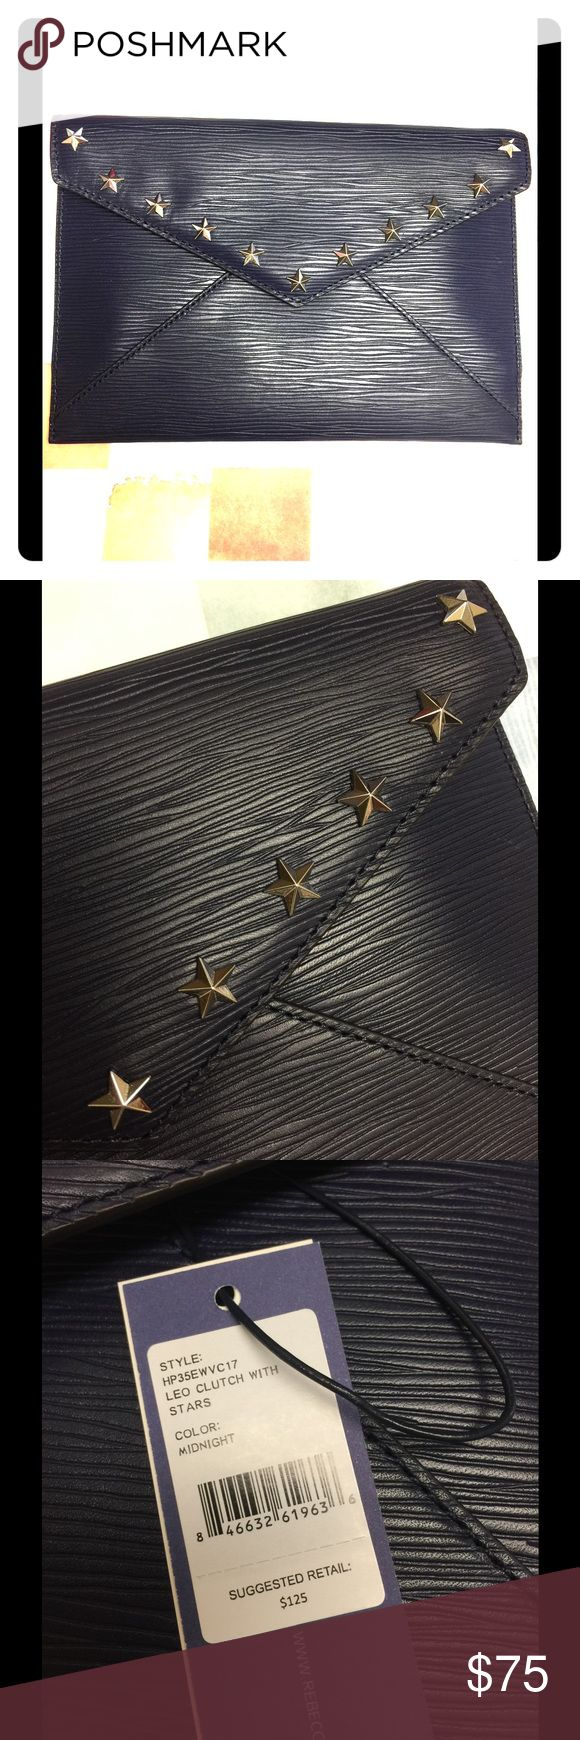 NWT Rebecca Minkoff Leo Envelope Clutch w/ Stars Textured dark navy Clutch with silver star studs, new with tags, perfect condition, no strap but a plain chain long necklace looped around the flap would be perfect! Lightweight and easy to carry, could even double as an XXL wallet for travel! NON NEGOTIABLE PRICE thank you for understanding ❤ Rebecca Minkoff Bags Clutches & Wristlets